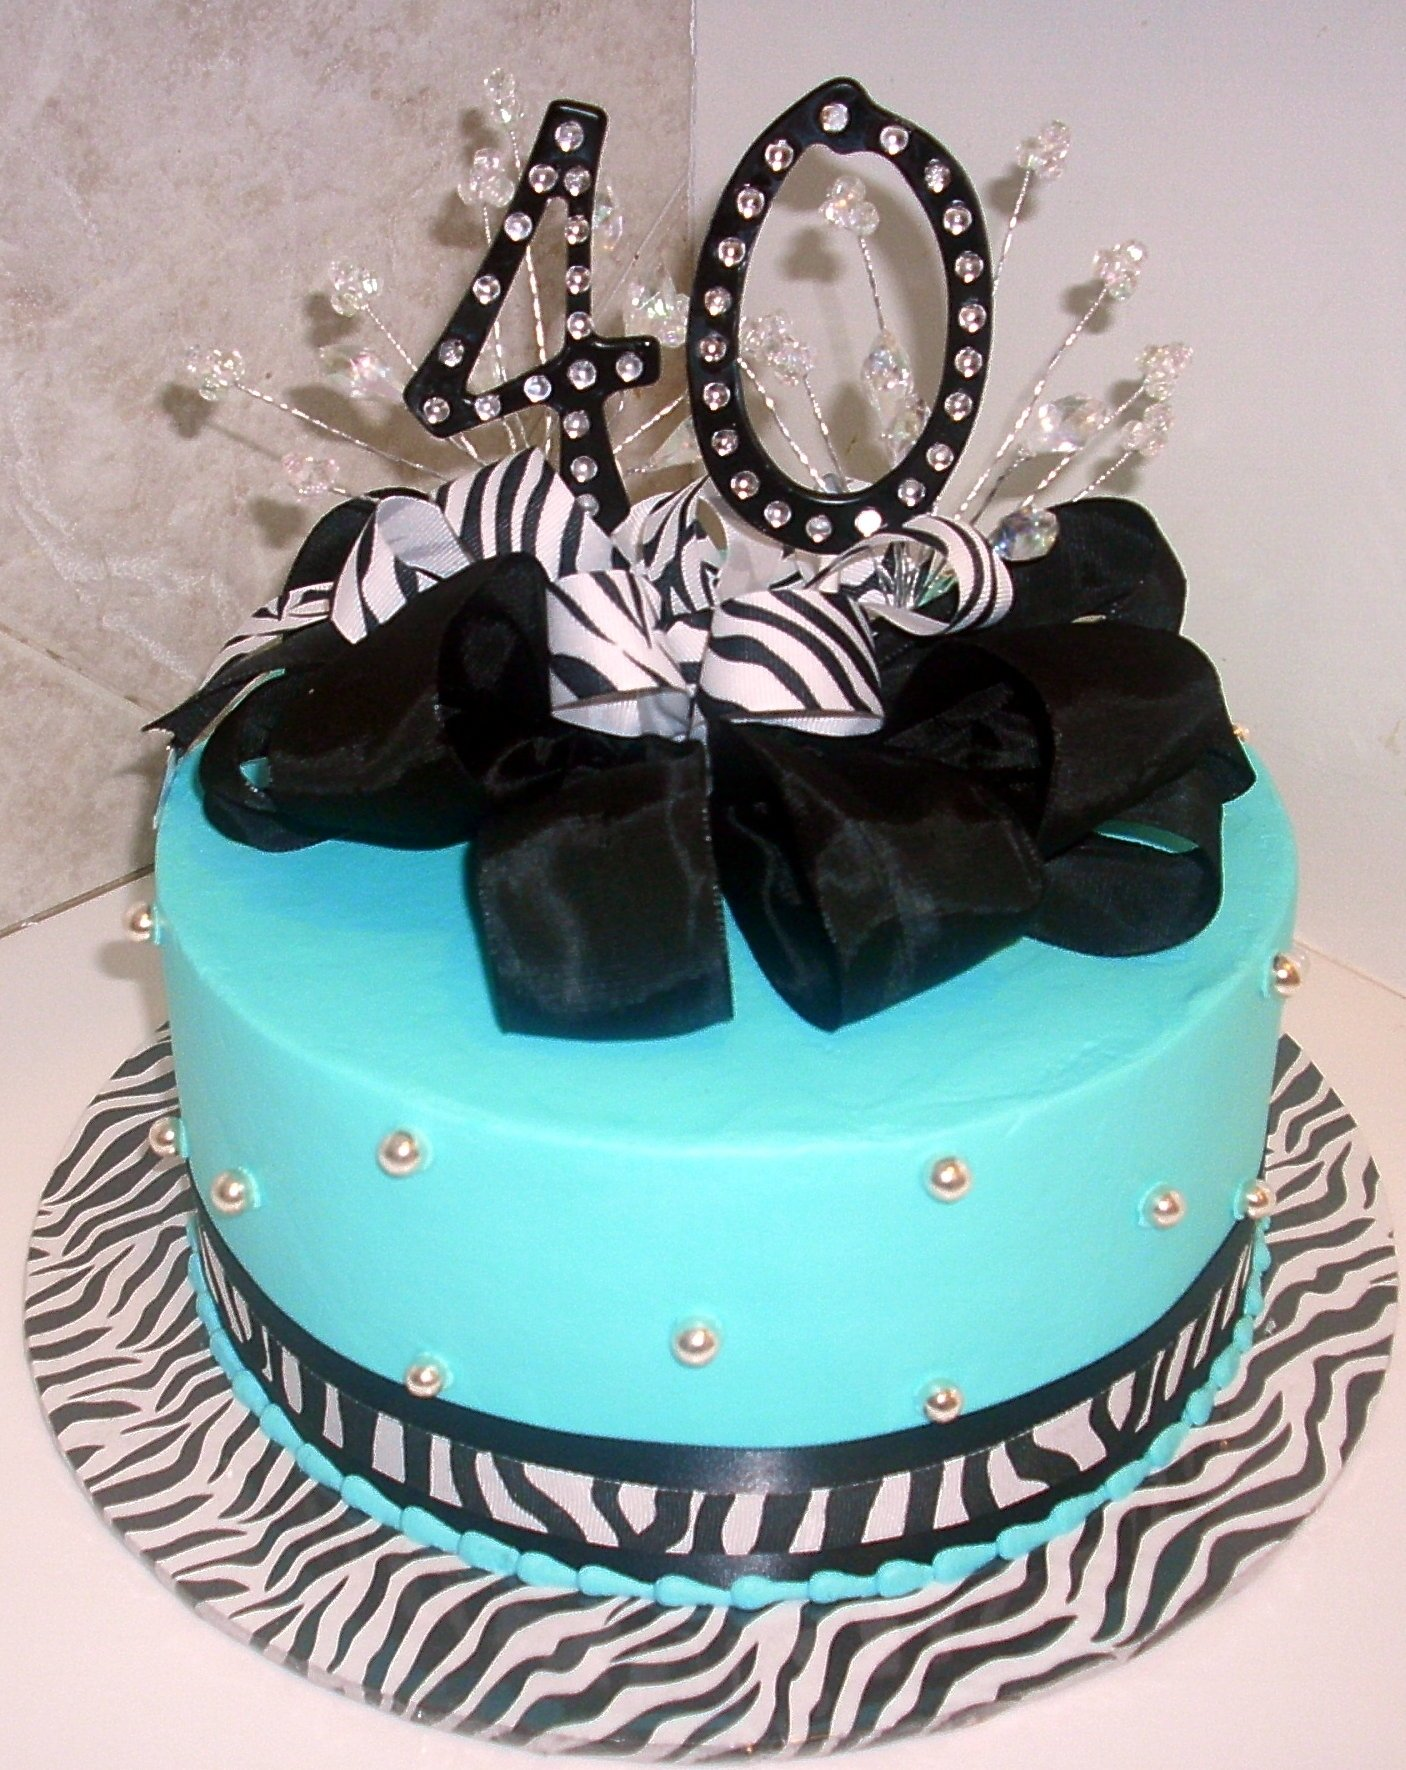 10 Stunning 40 Year Old Birthday Cake Ideas 40th birthday cakes for women themecakesbytraci recipes to